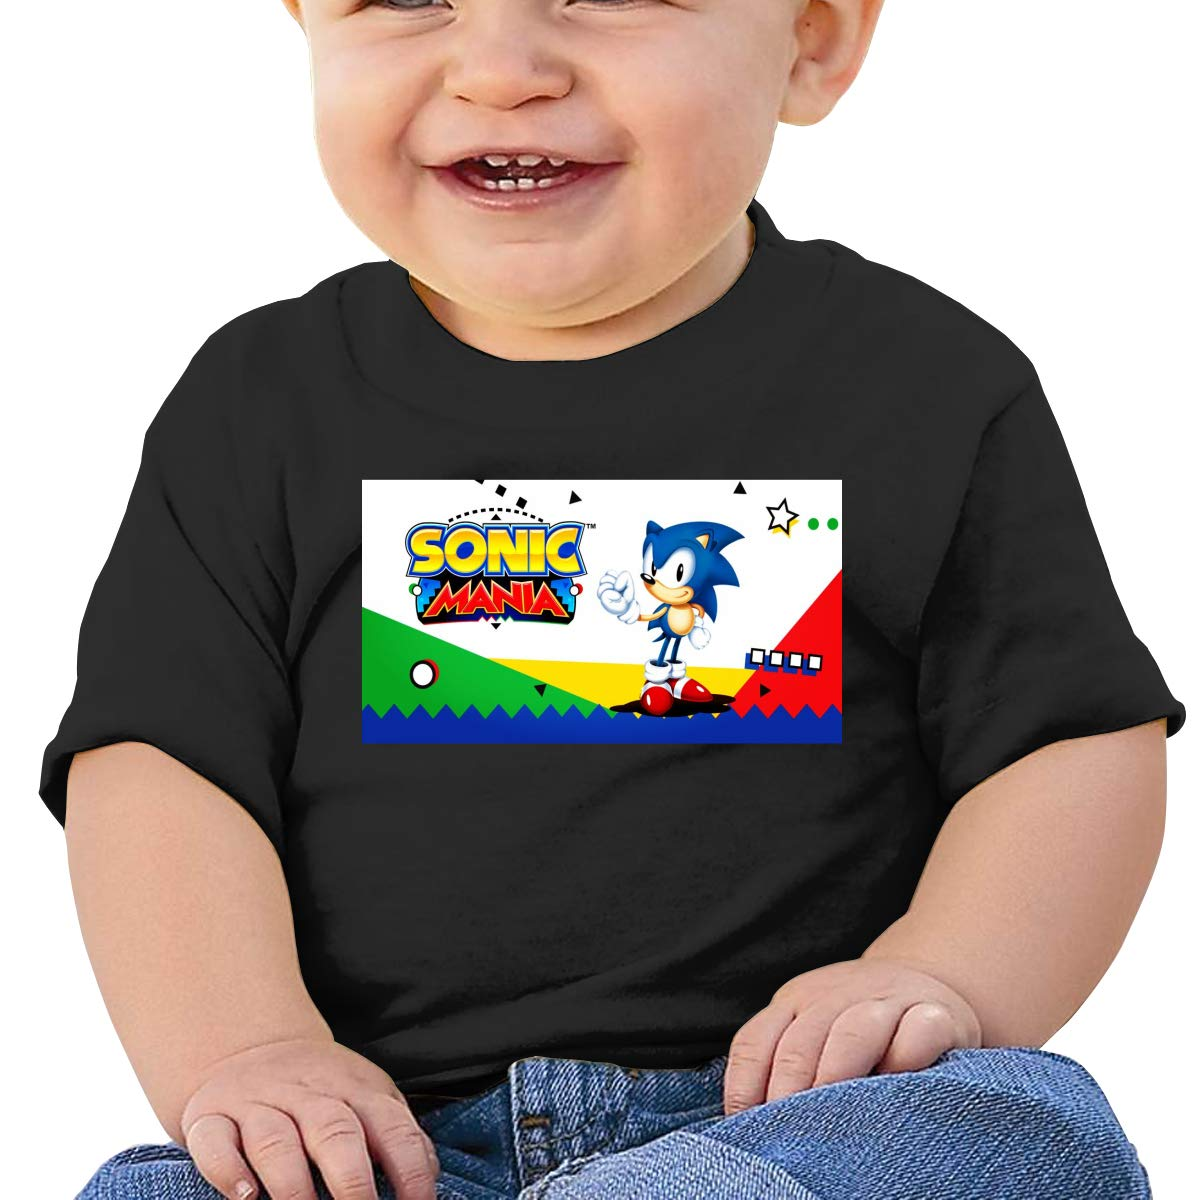 FHTD Sonic Mania Infant Graphic T-Shirt Baby Cartoon Cotton Tees Black